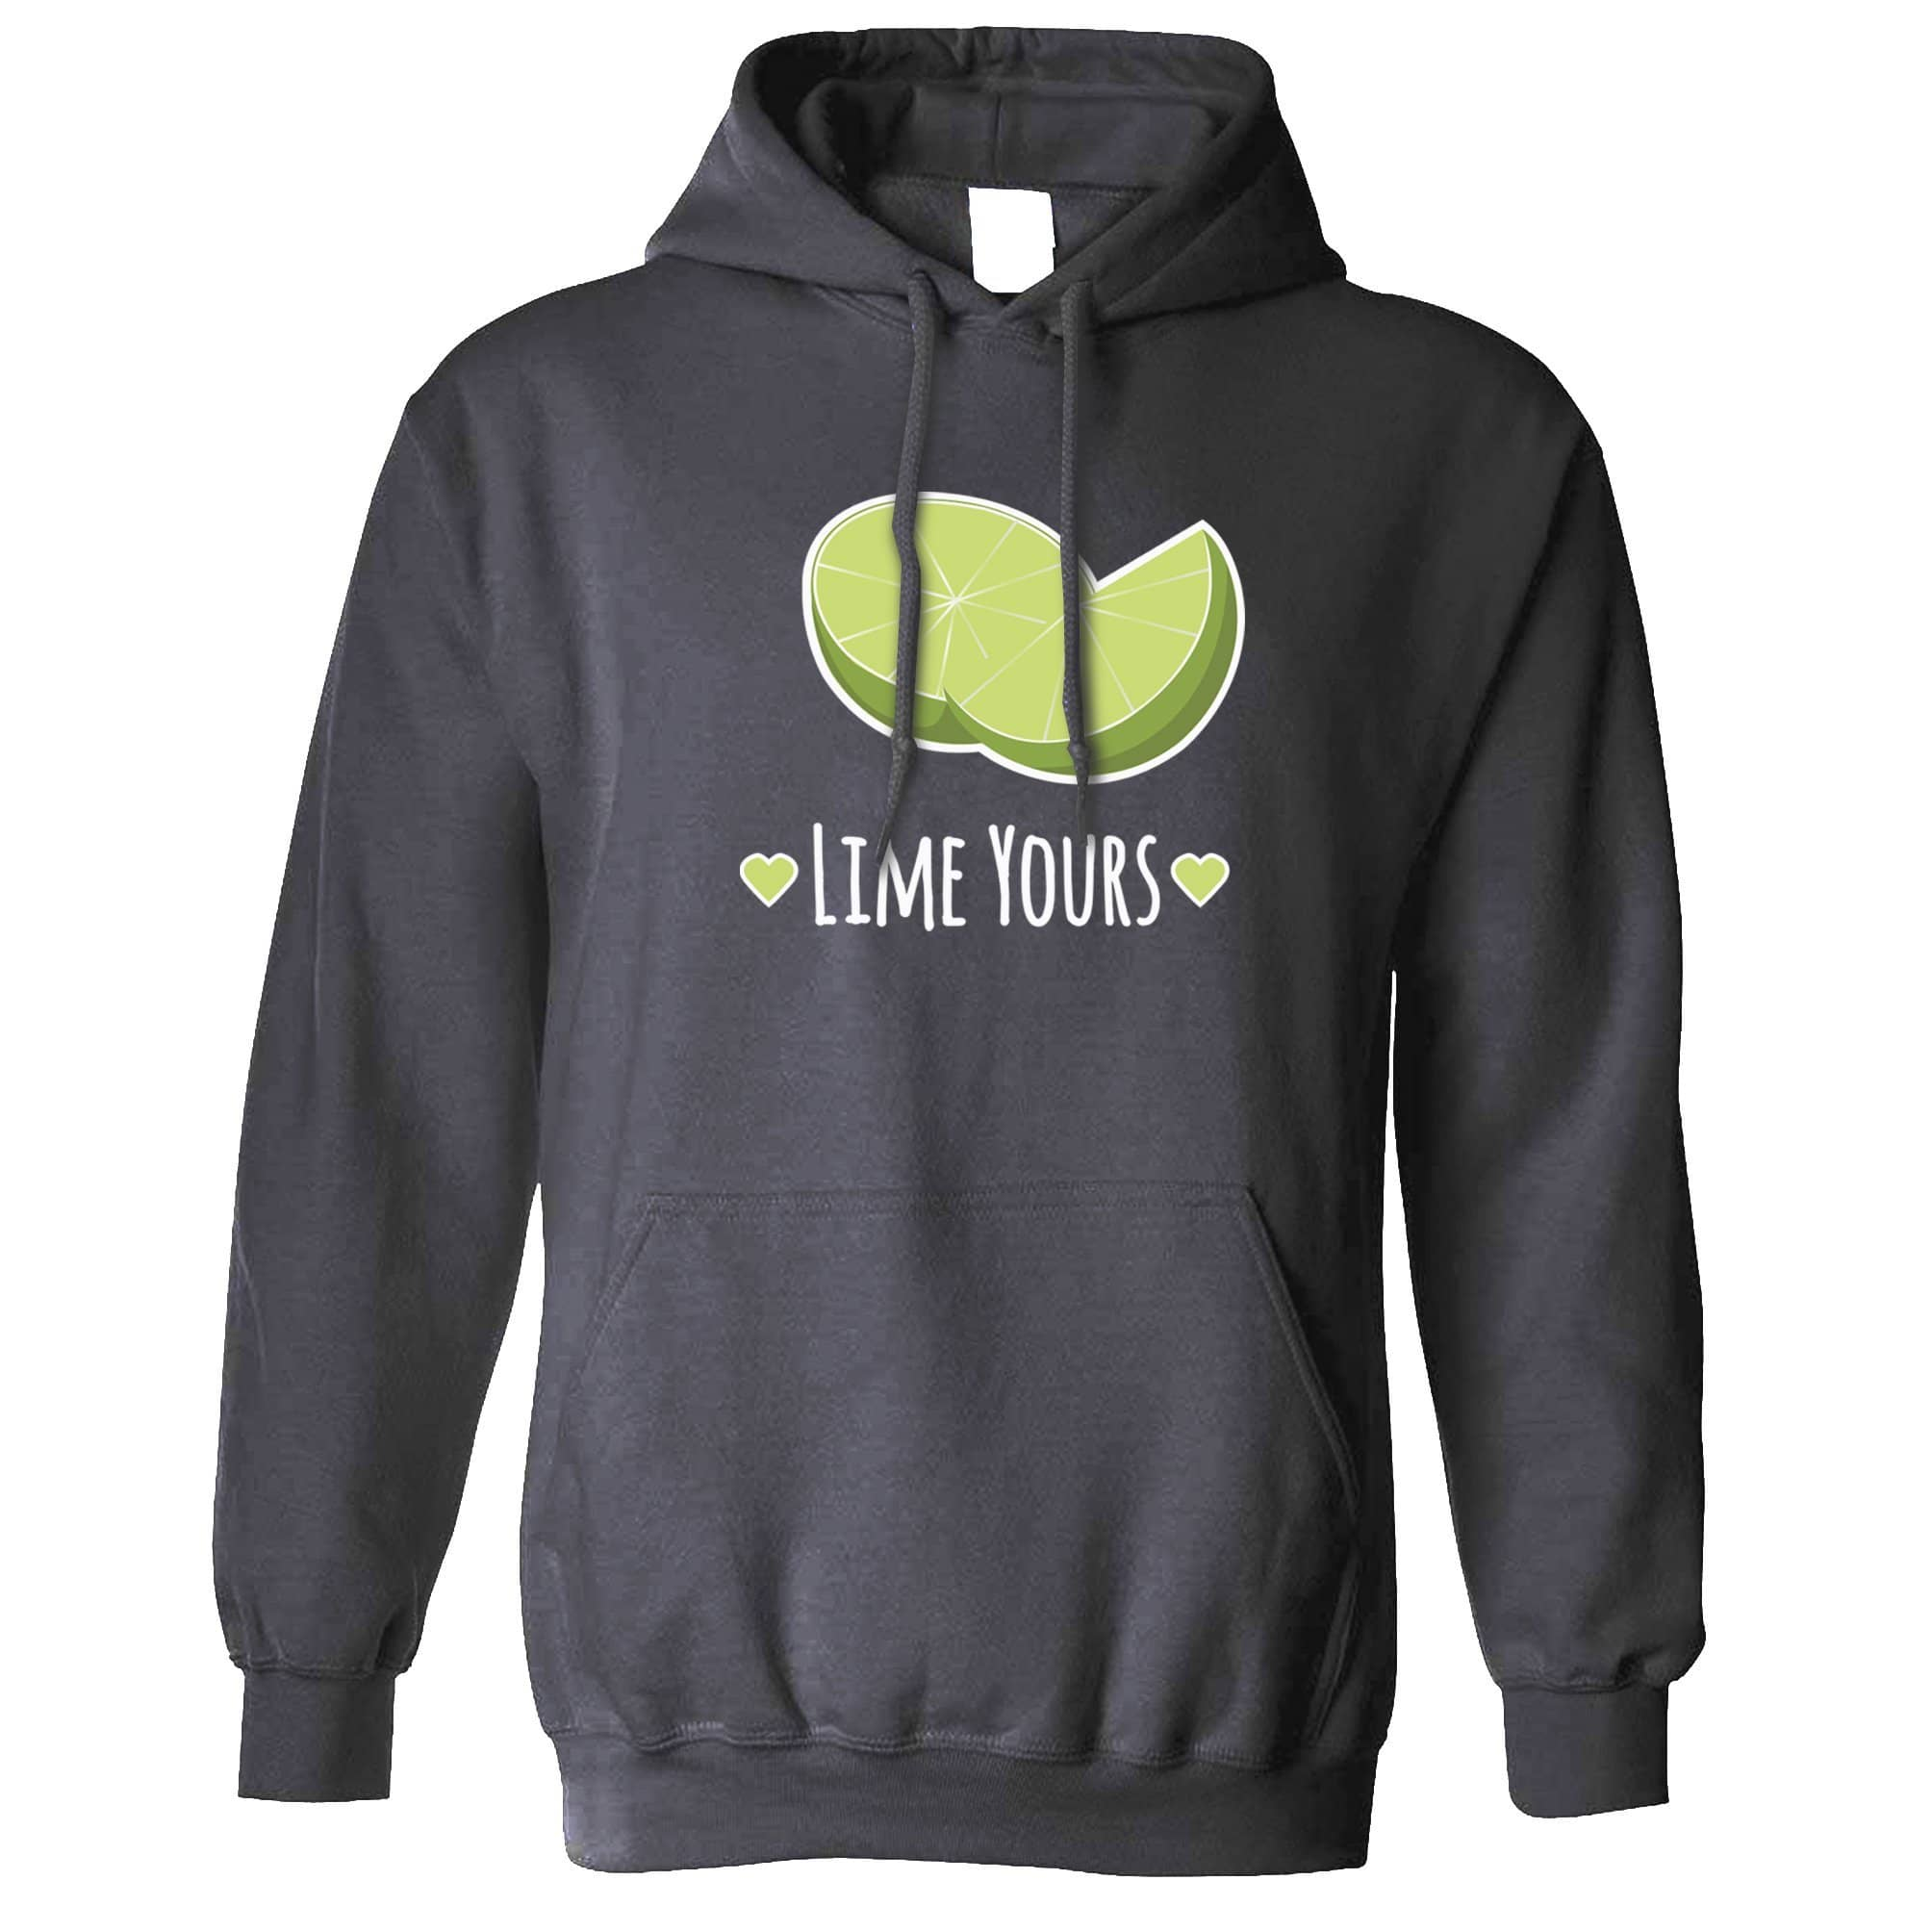 Novelty Couples Pun Hoodie I'm Yours Lime Joke Slogan Hooded Jumper